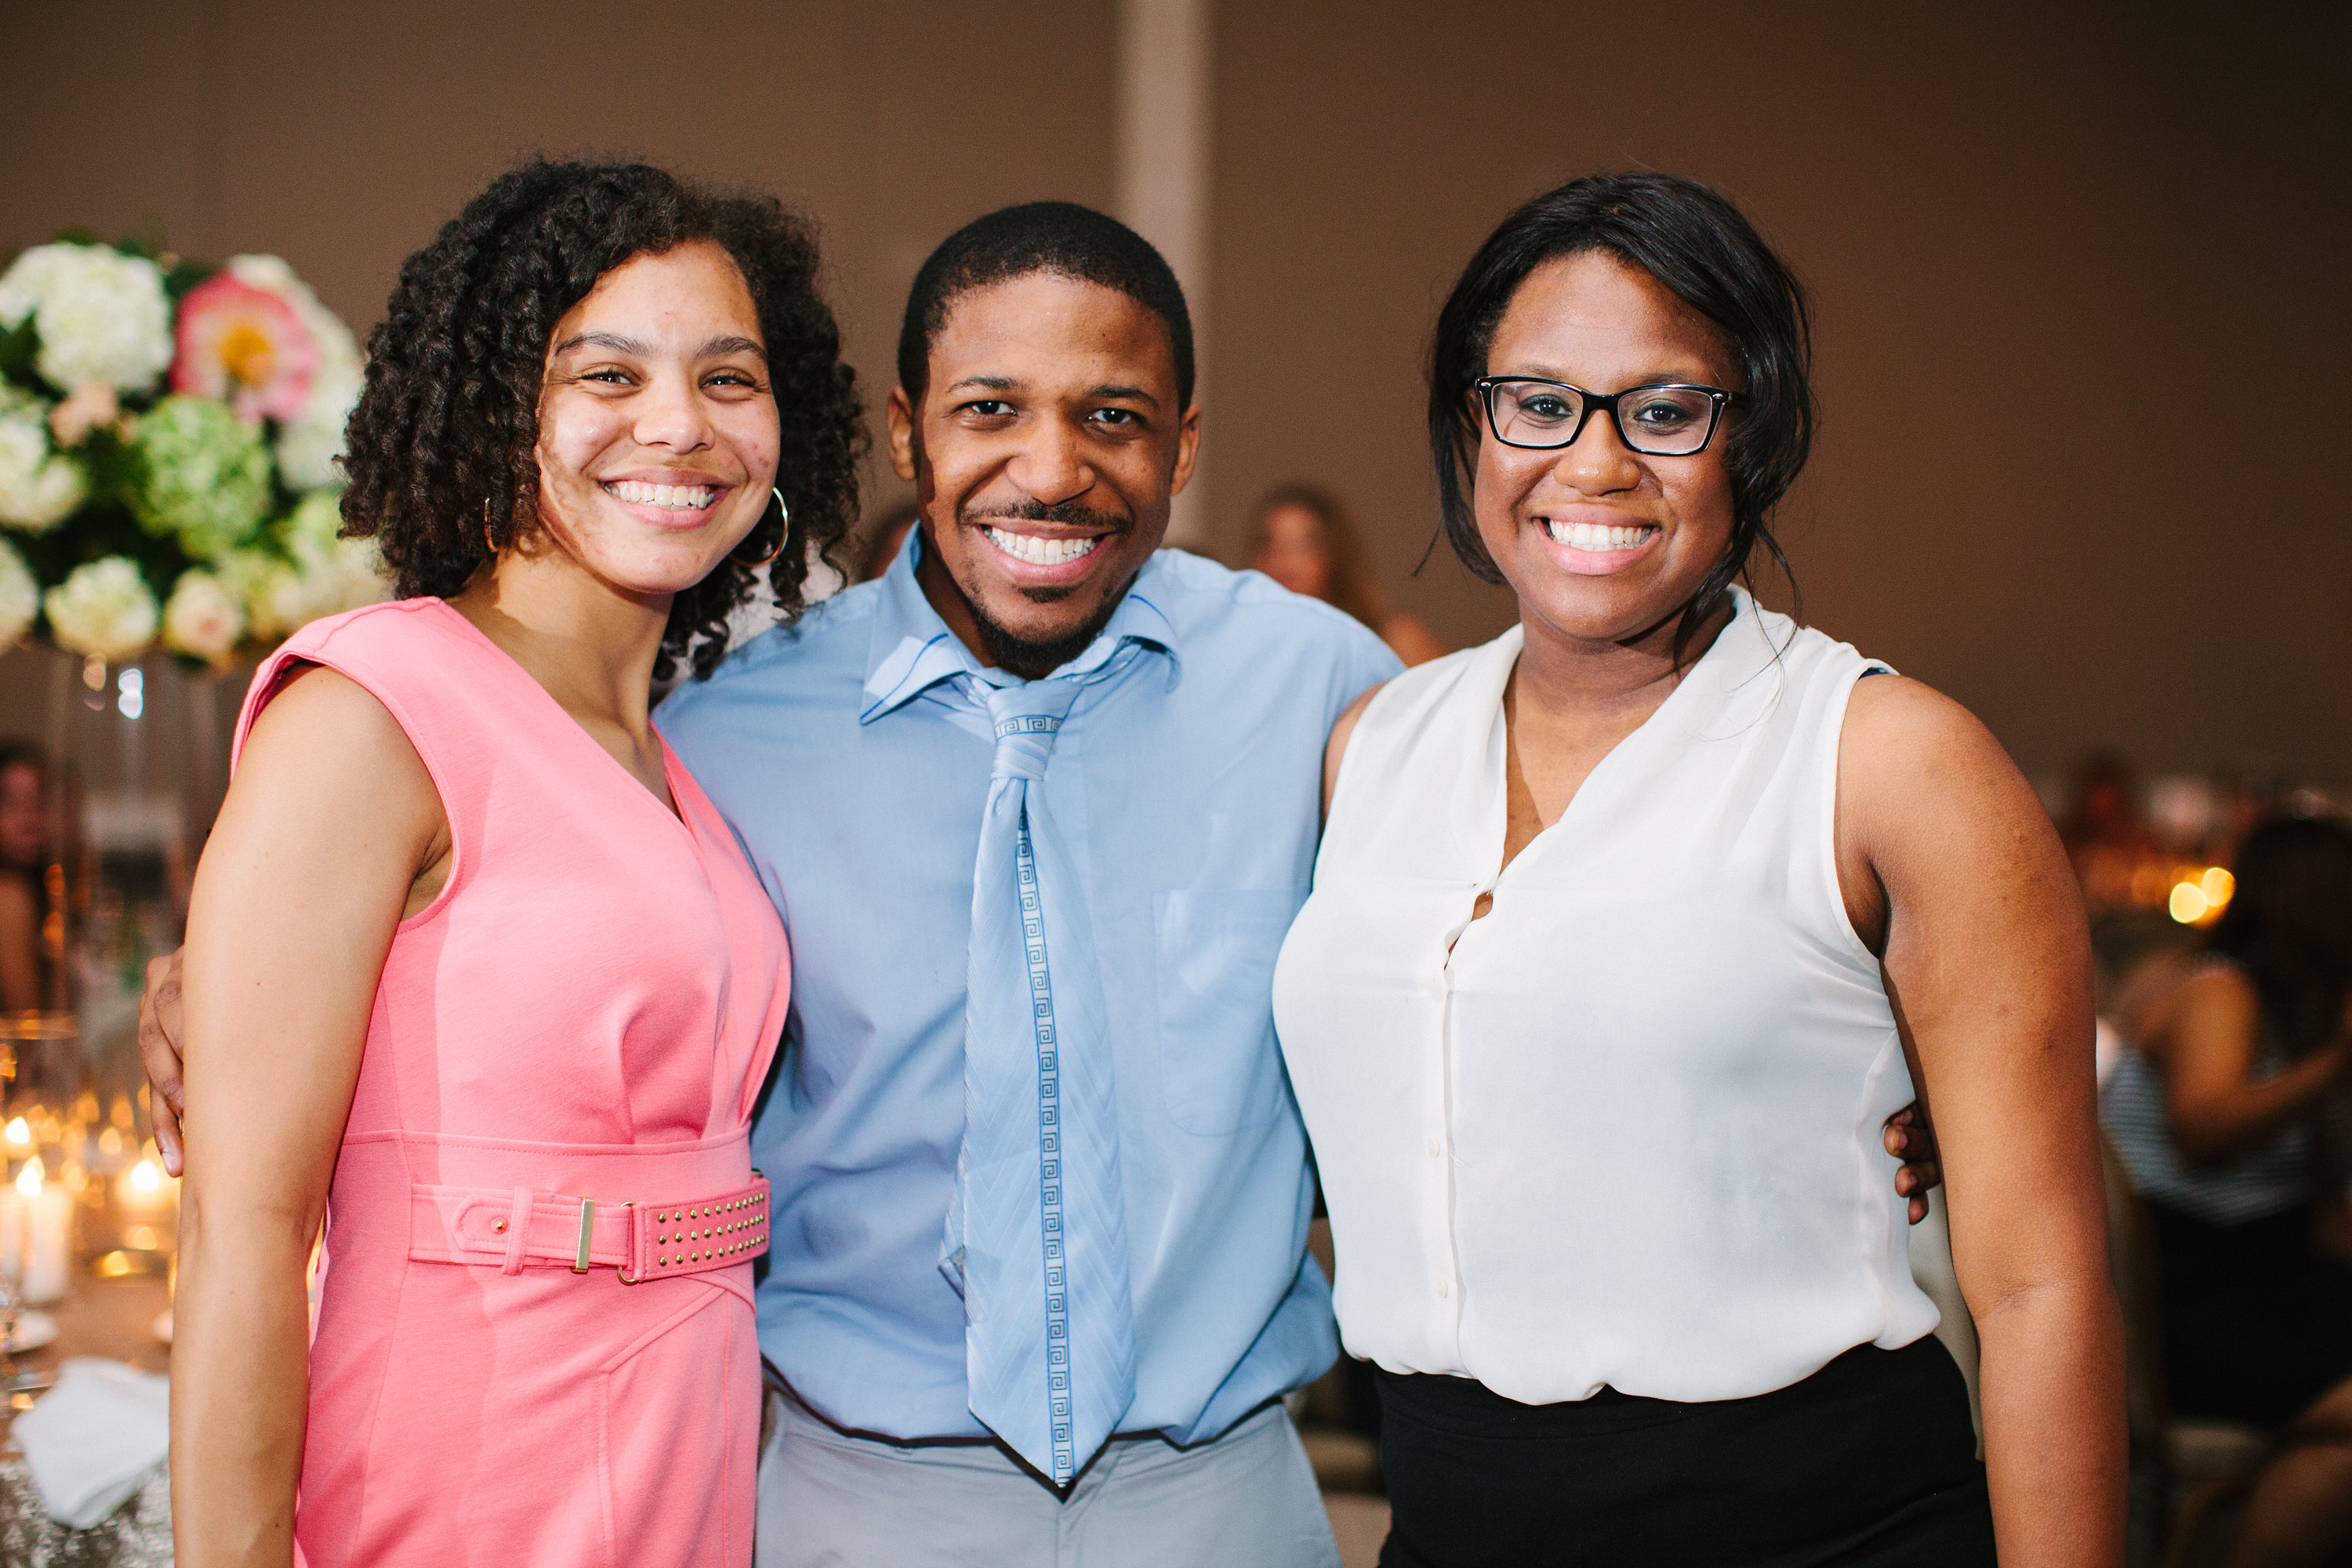 Allen_Reception_ANNAROUTHPHOTOGRAPHY_0392